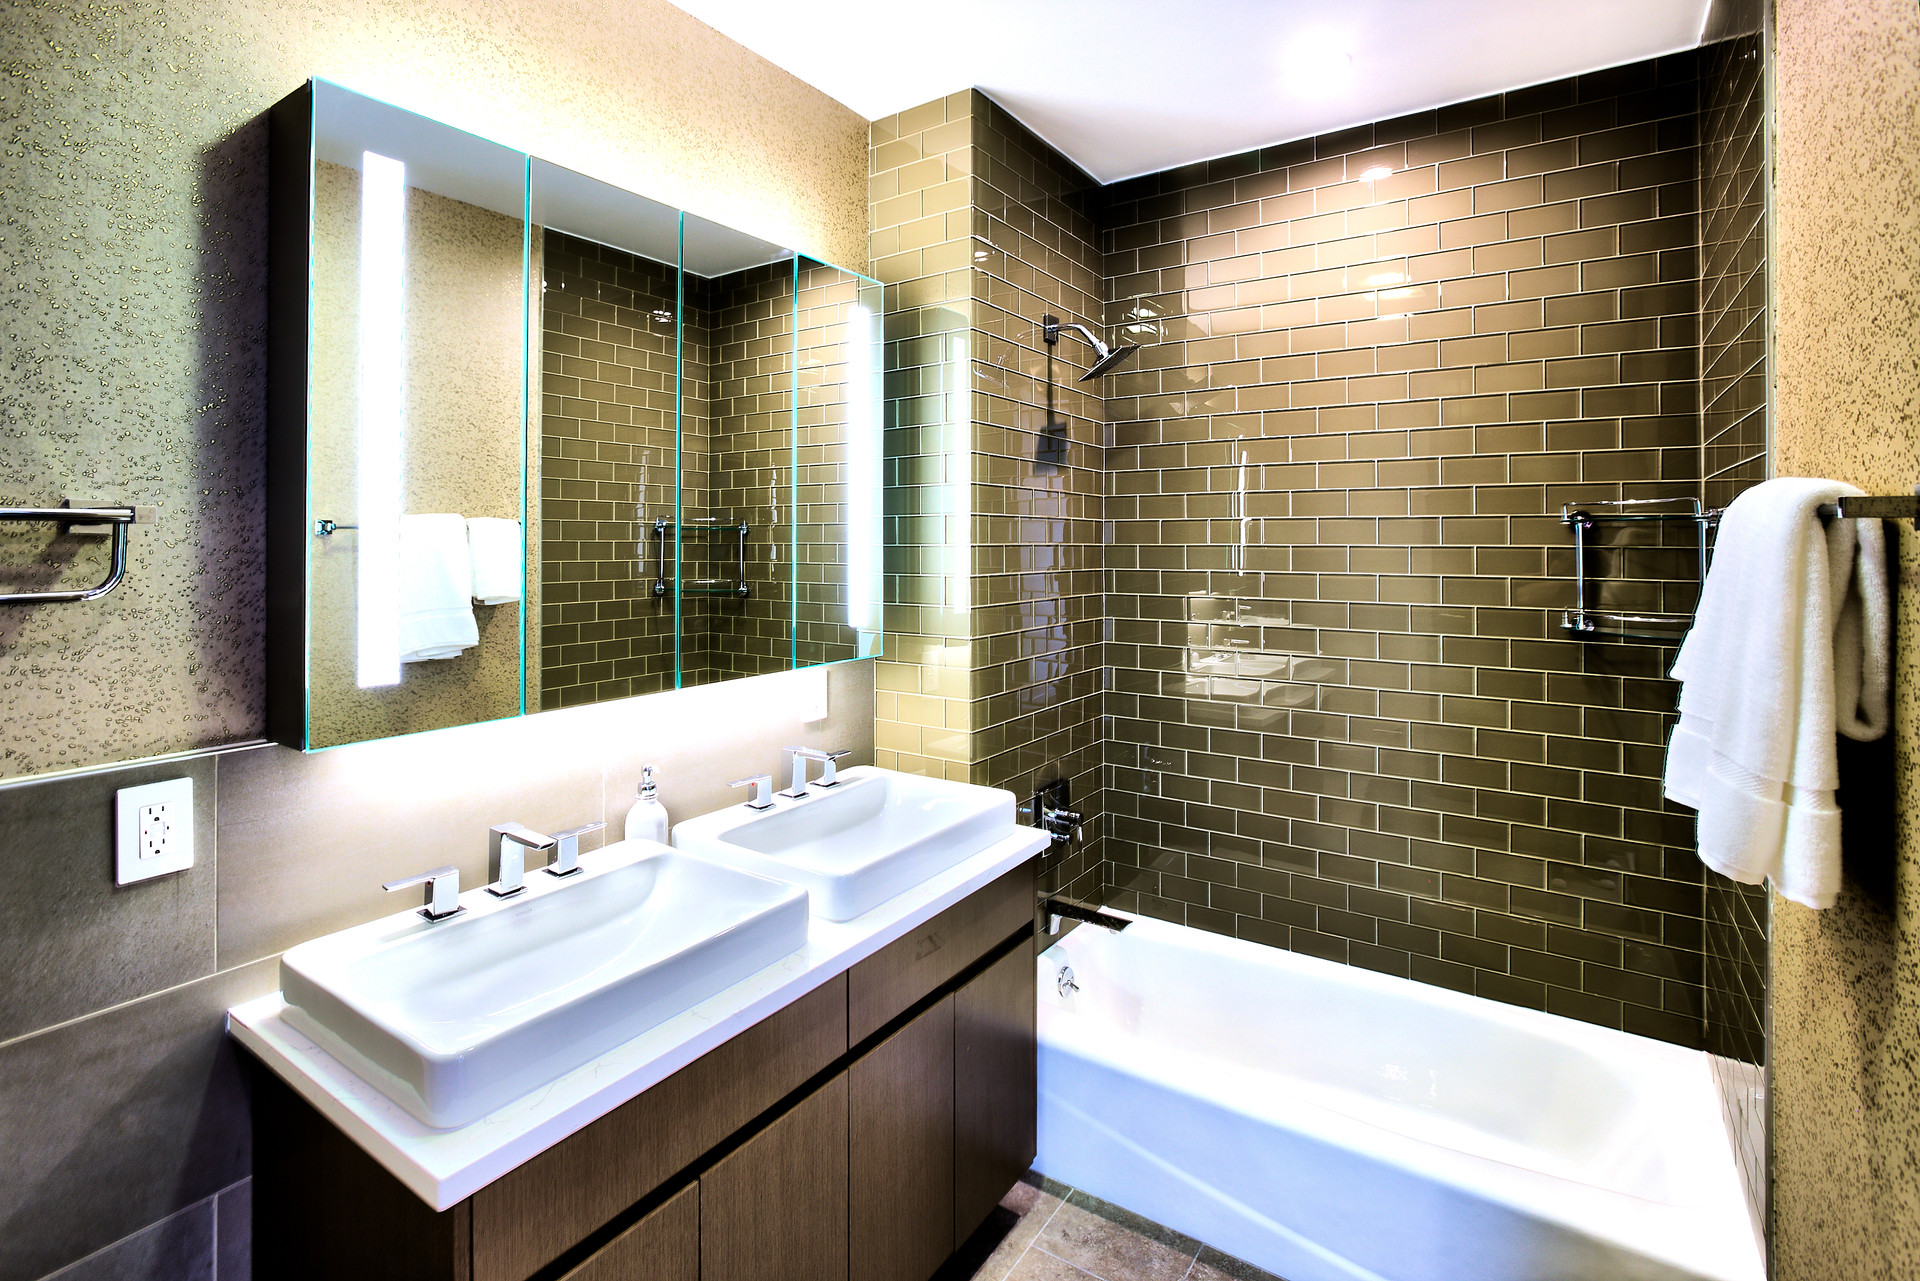 Bathroom double sink 1.jpg